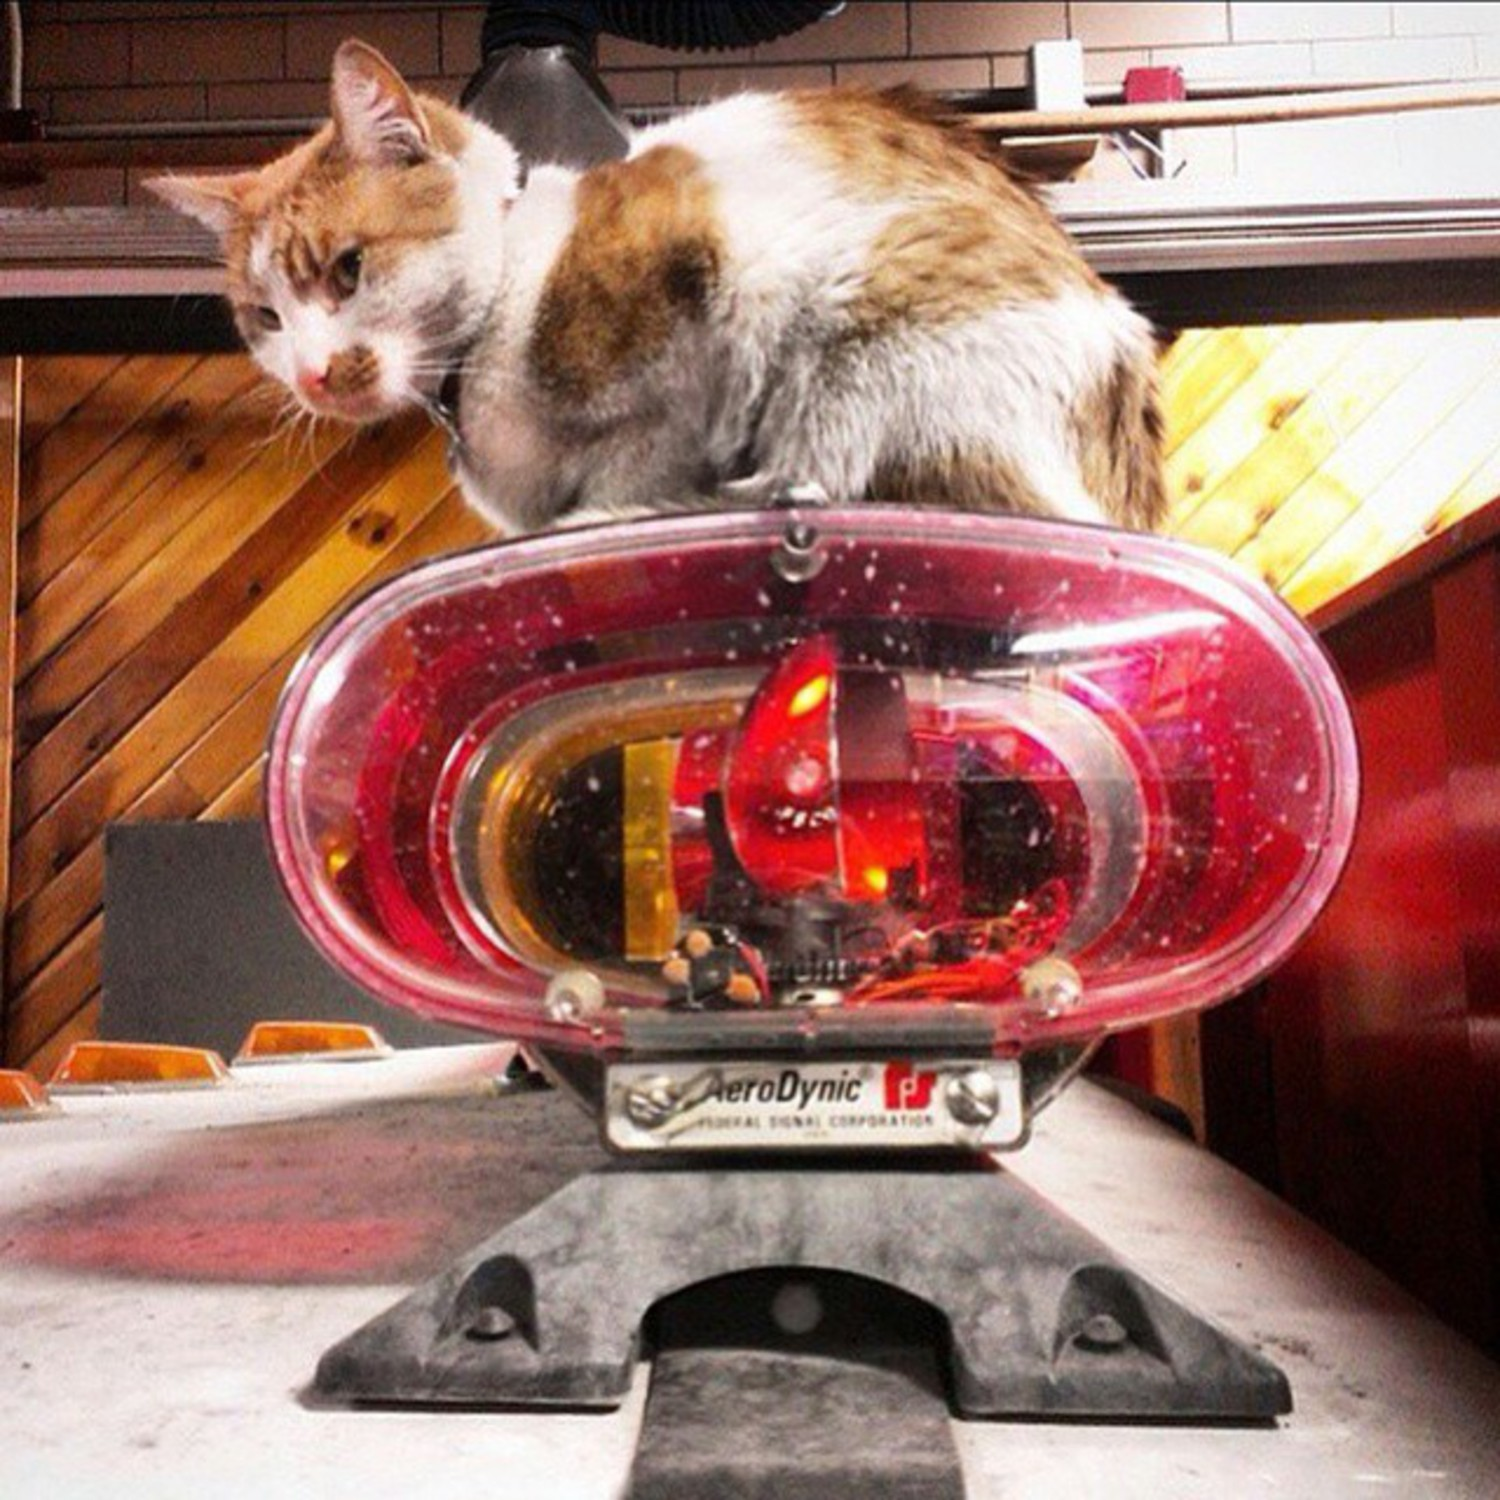 It may be Monday morning but my meowutual partner @carlow_fdny_cat is always ready to go lights and sirens #alwaysready #beeeeeepbooooop #catsgo